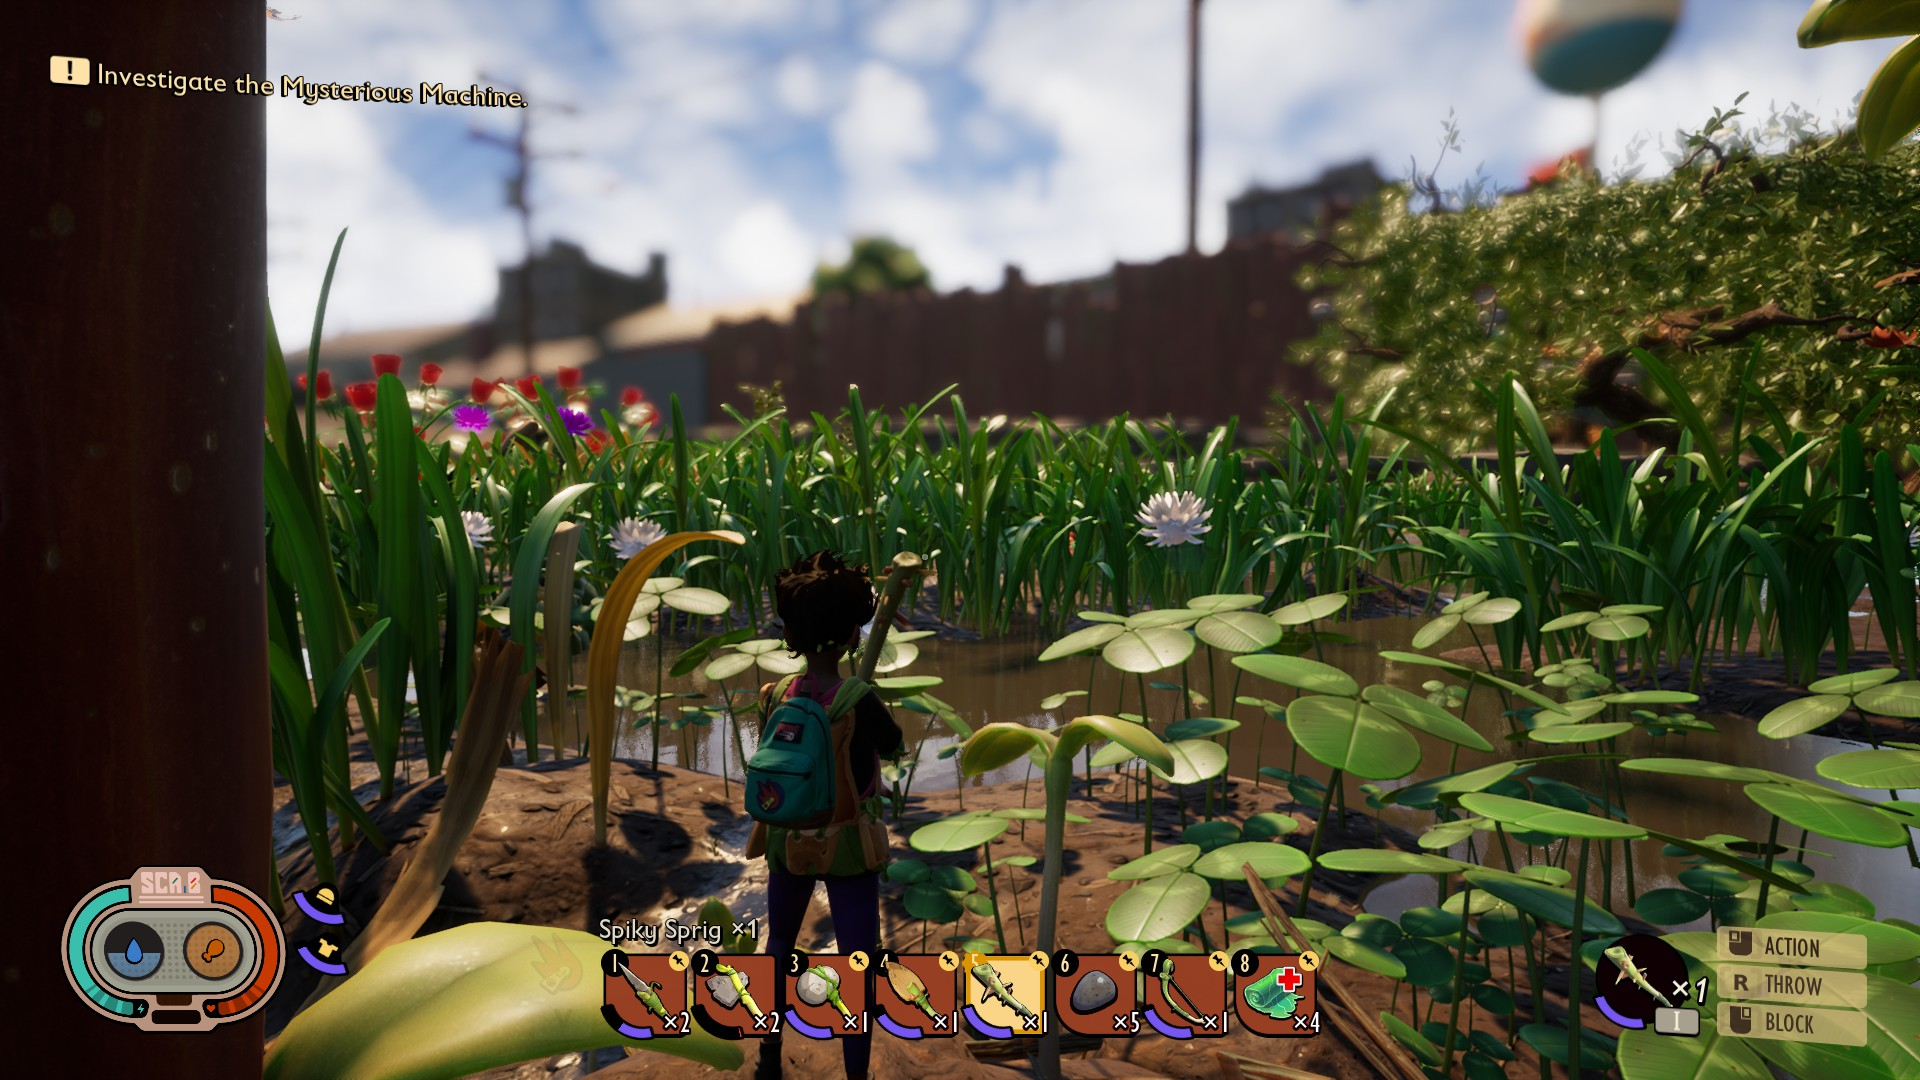 The player looks out from a patch of clover, over a brackish pond.